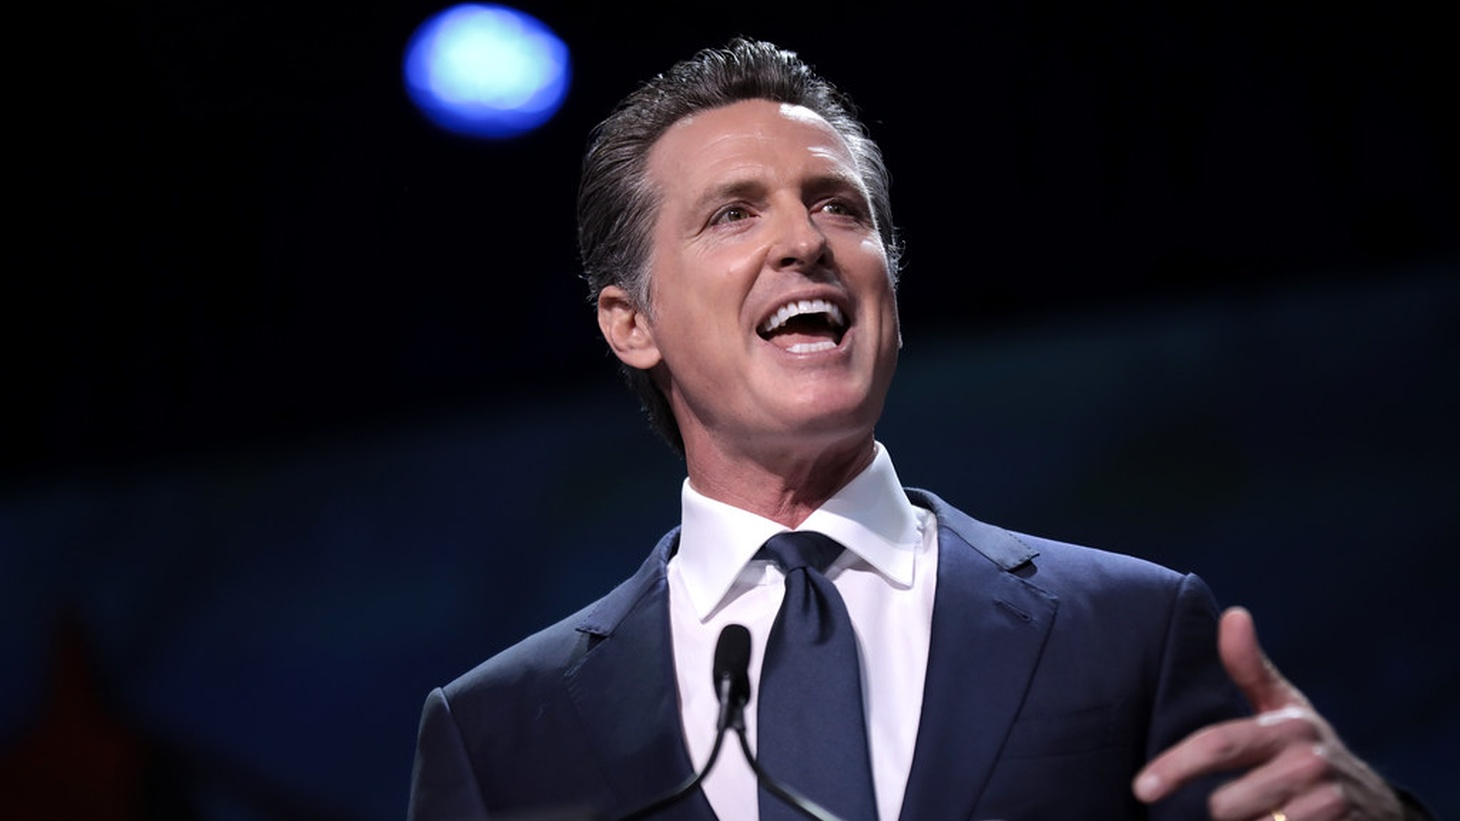 Gov. Newsom says social distancing efforts have been working.